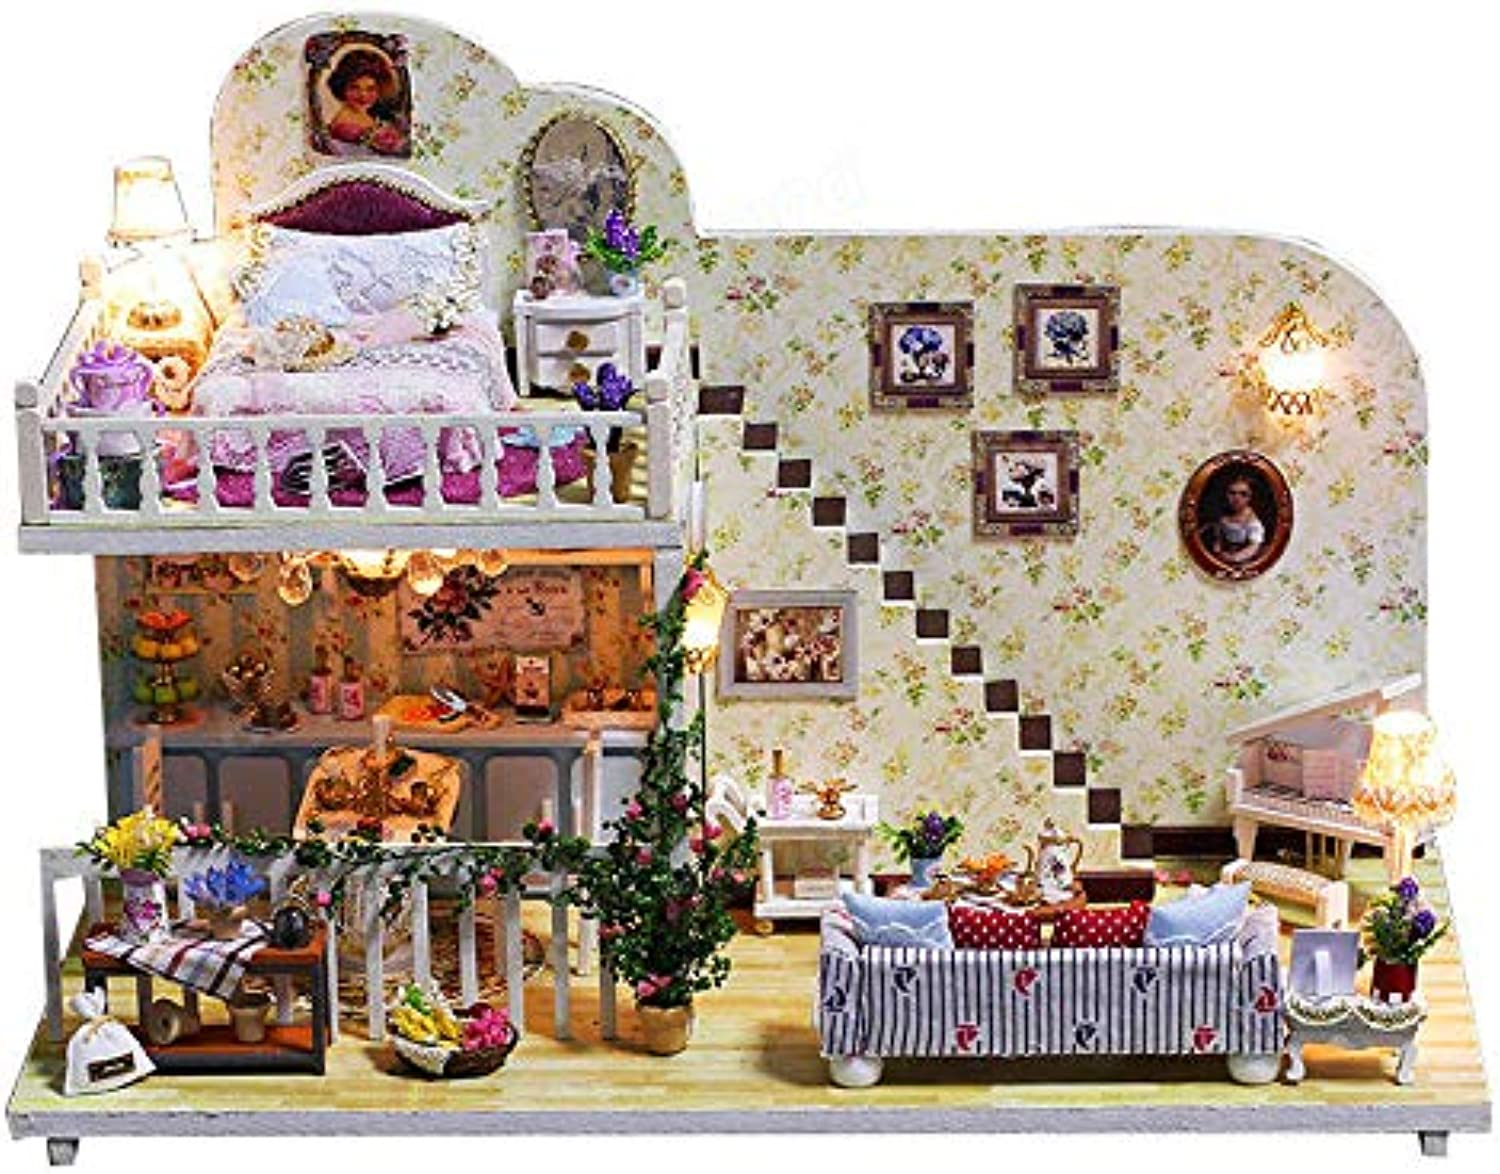 Global Brands Online iiecreate K023 Amsterdam Village Cottage DIY Dollhouse With Furniture Light Cover Gift House Toys